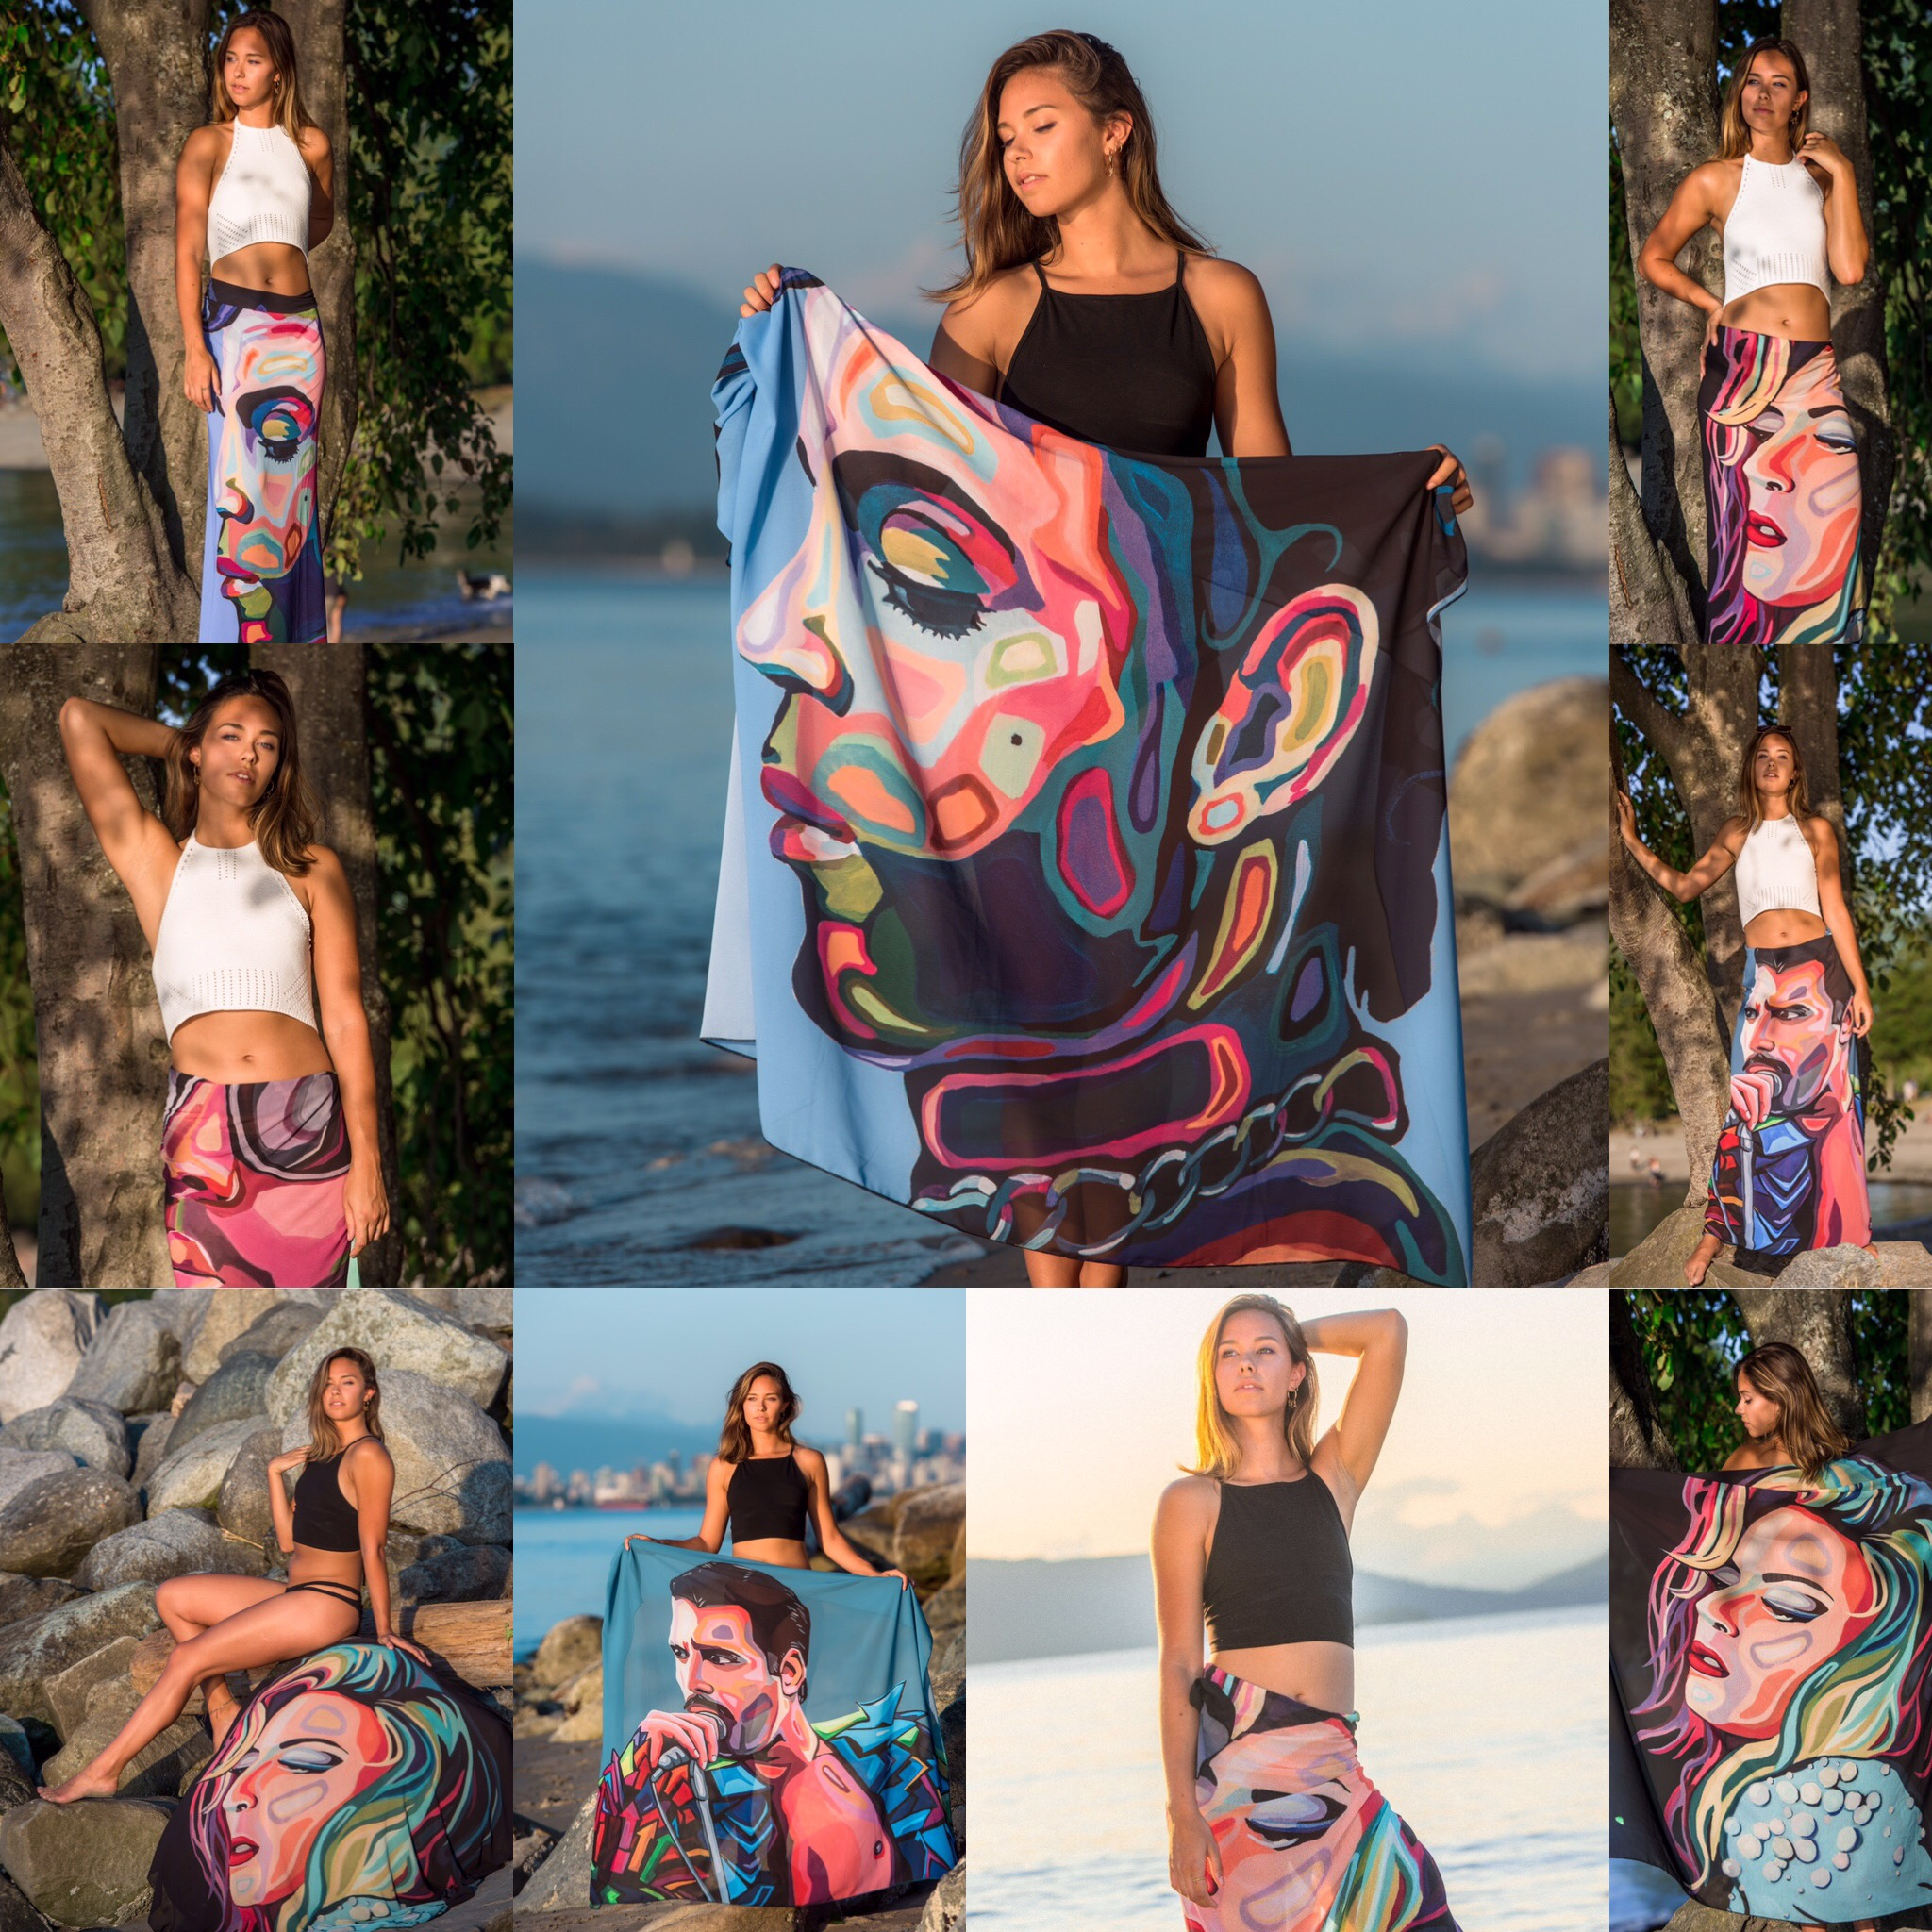 A collage of images showing multiple uses for a large piece of fabric. The fabric has an image of a queer celebrity on it, and can be used as a skirt or blanket.